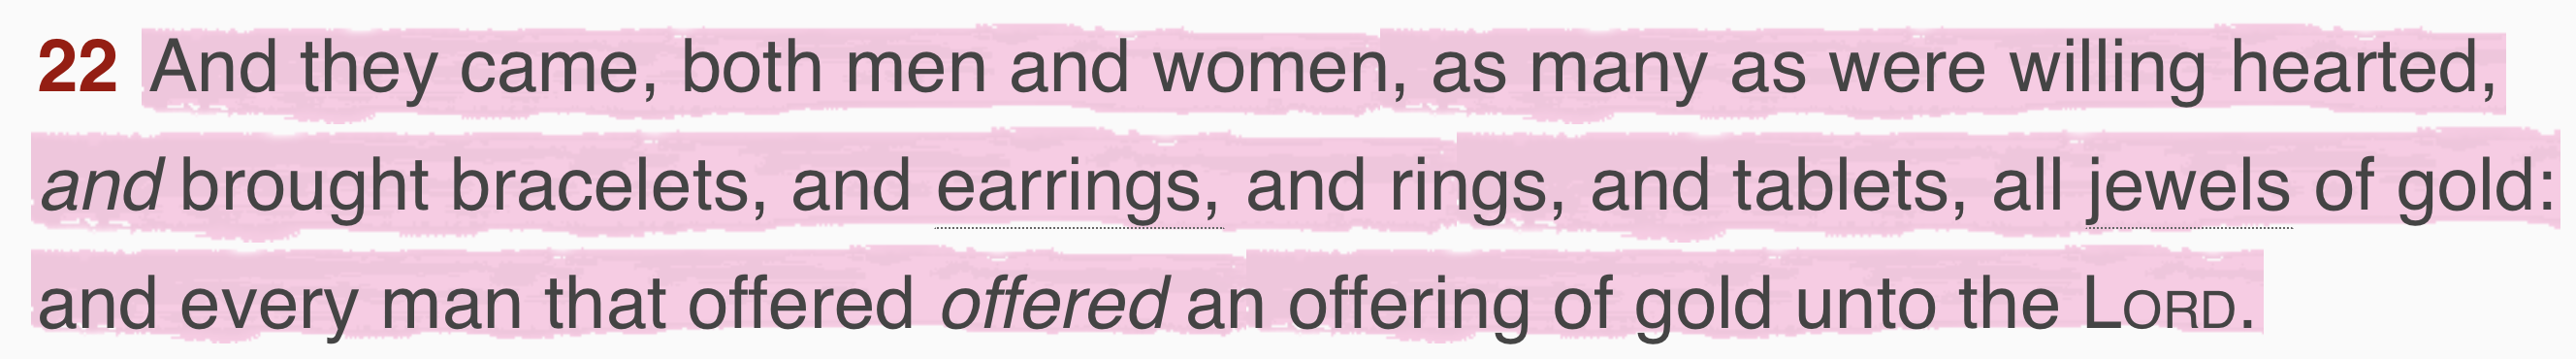 Offering out of jewelry (Exodus) - Should Christians Wear Jewelry